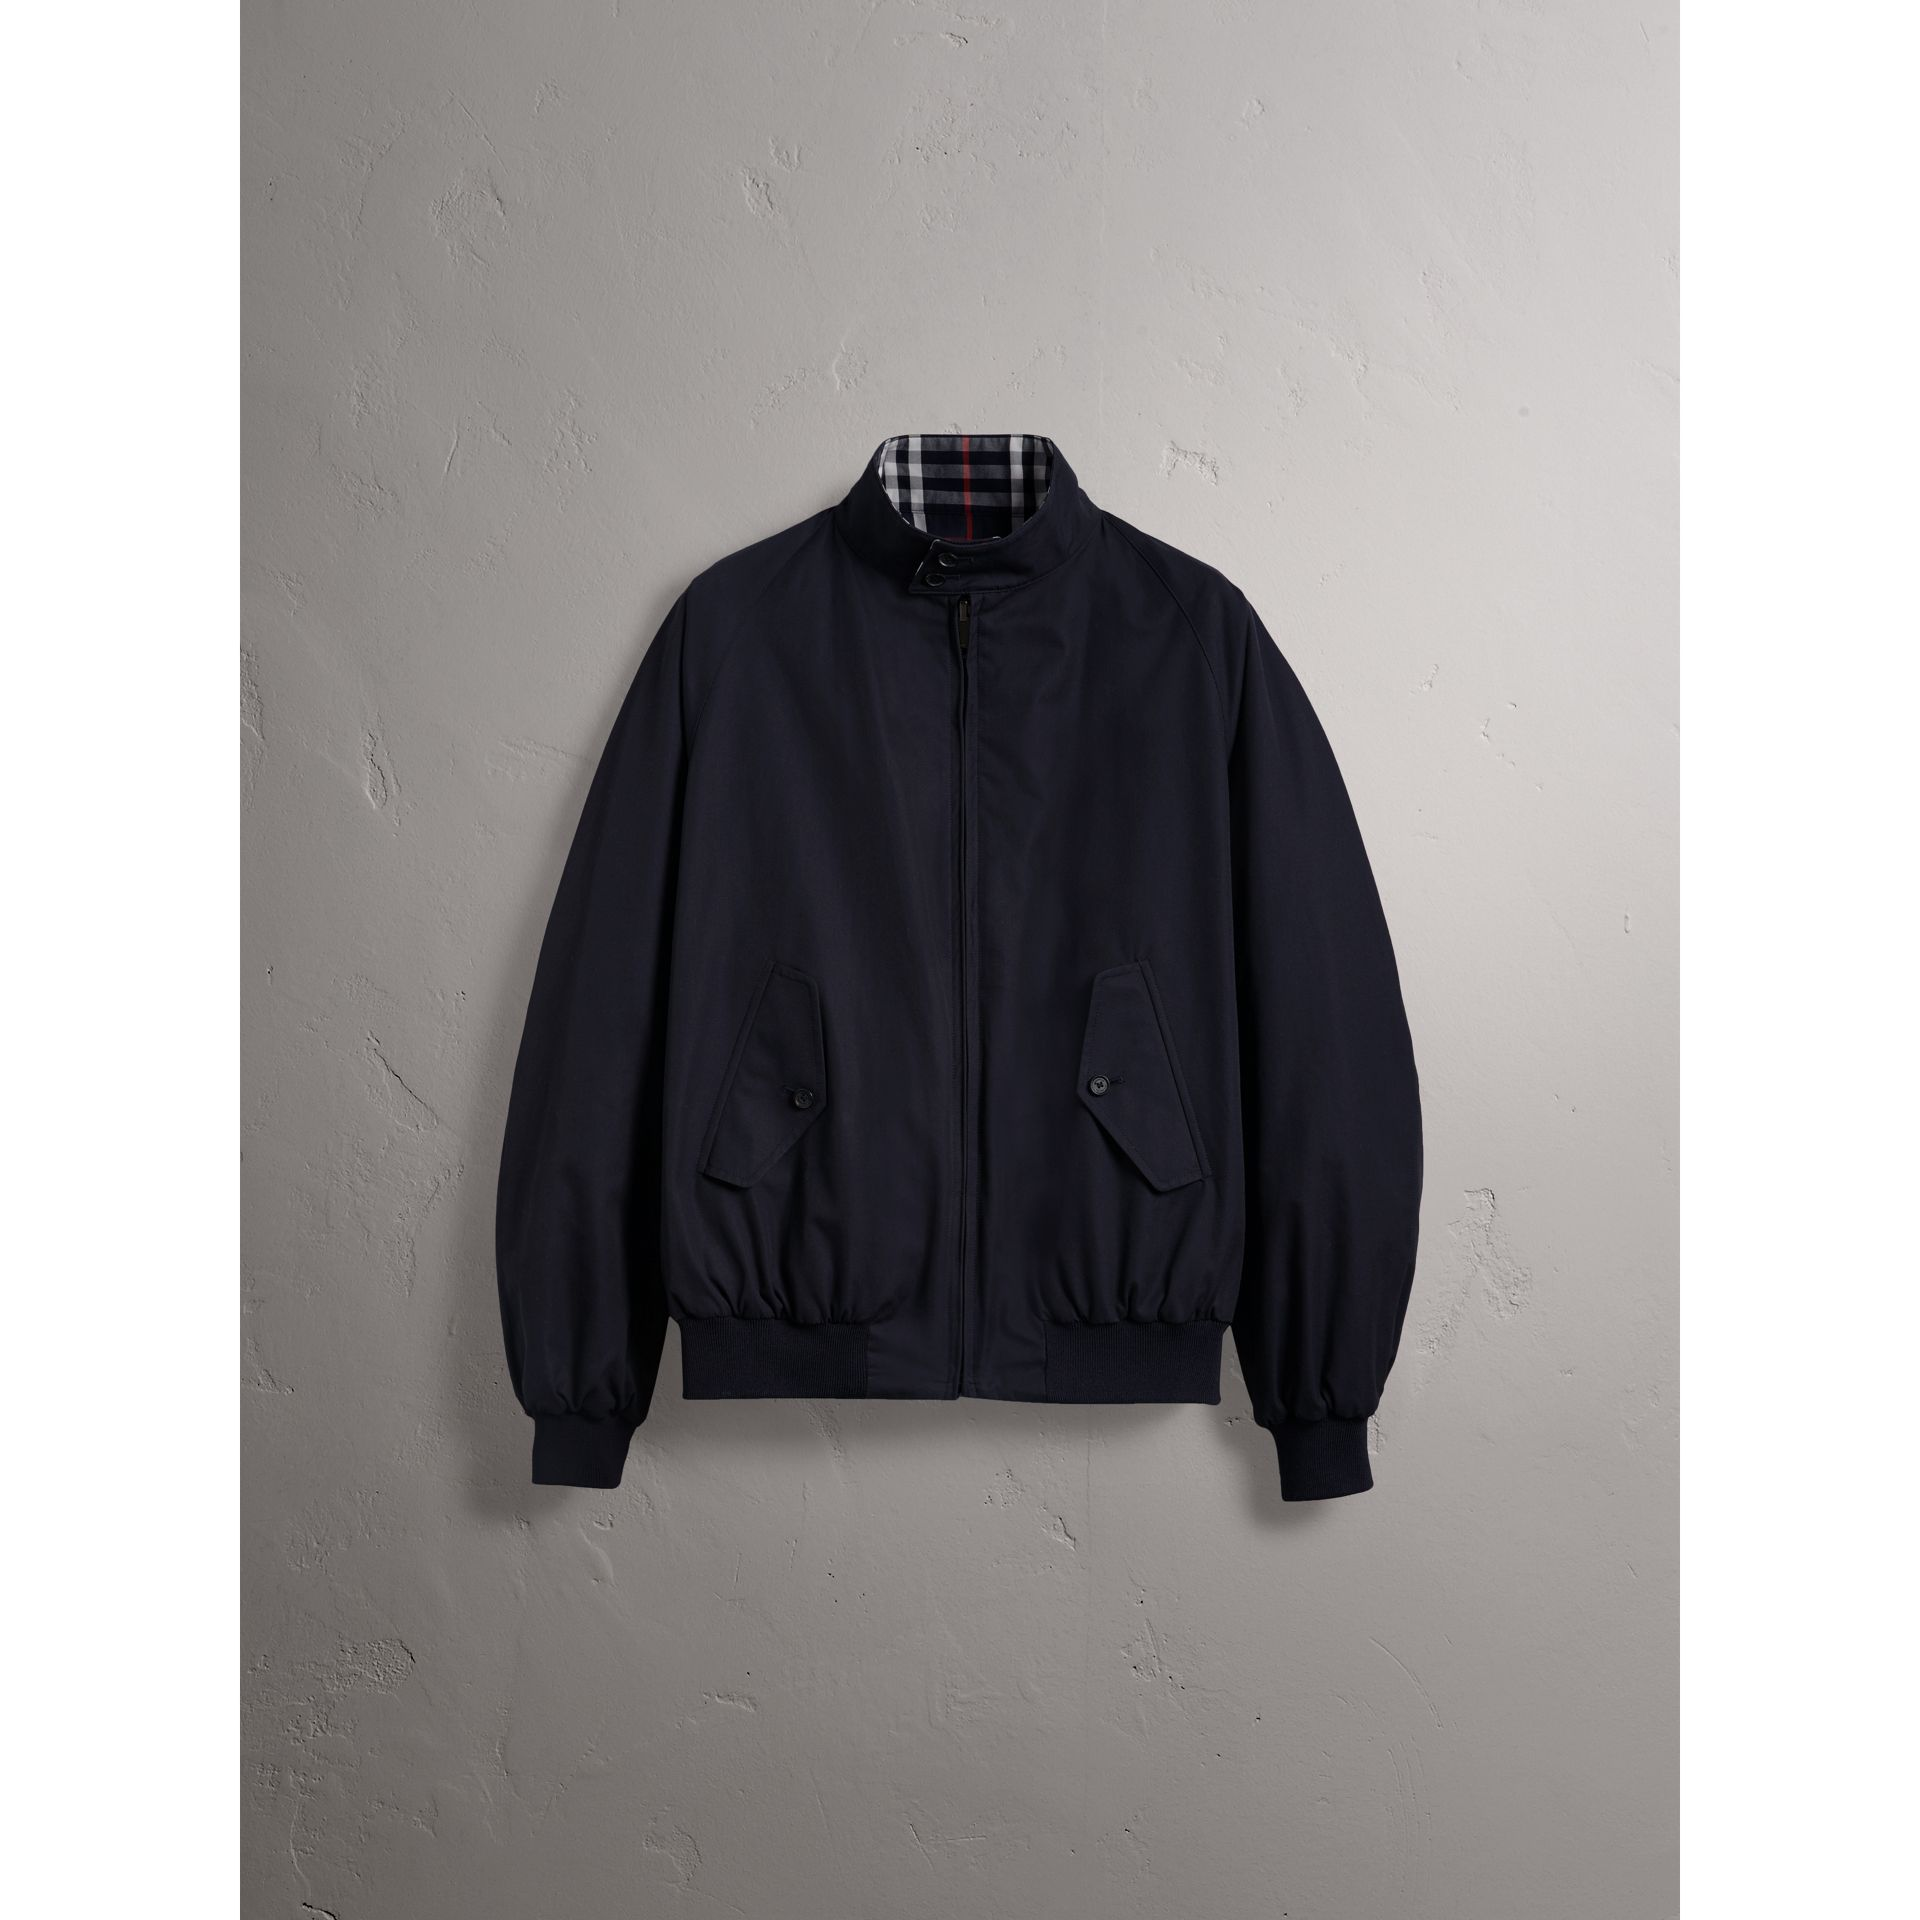 Gosha x Burberry Reversible Harrington Jacket in Navy | Burberry - gallery image 4